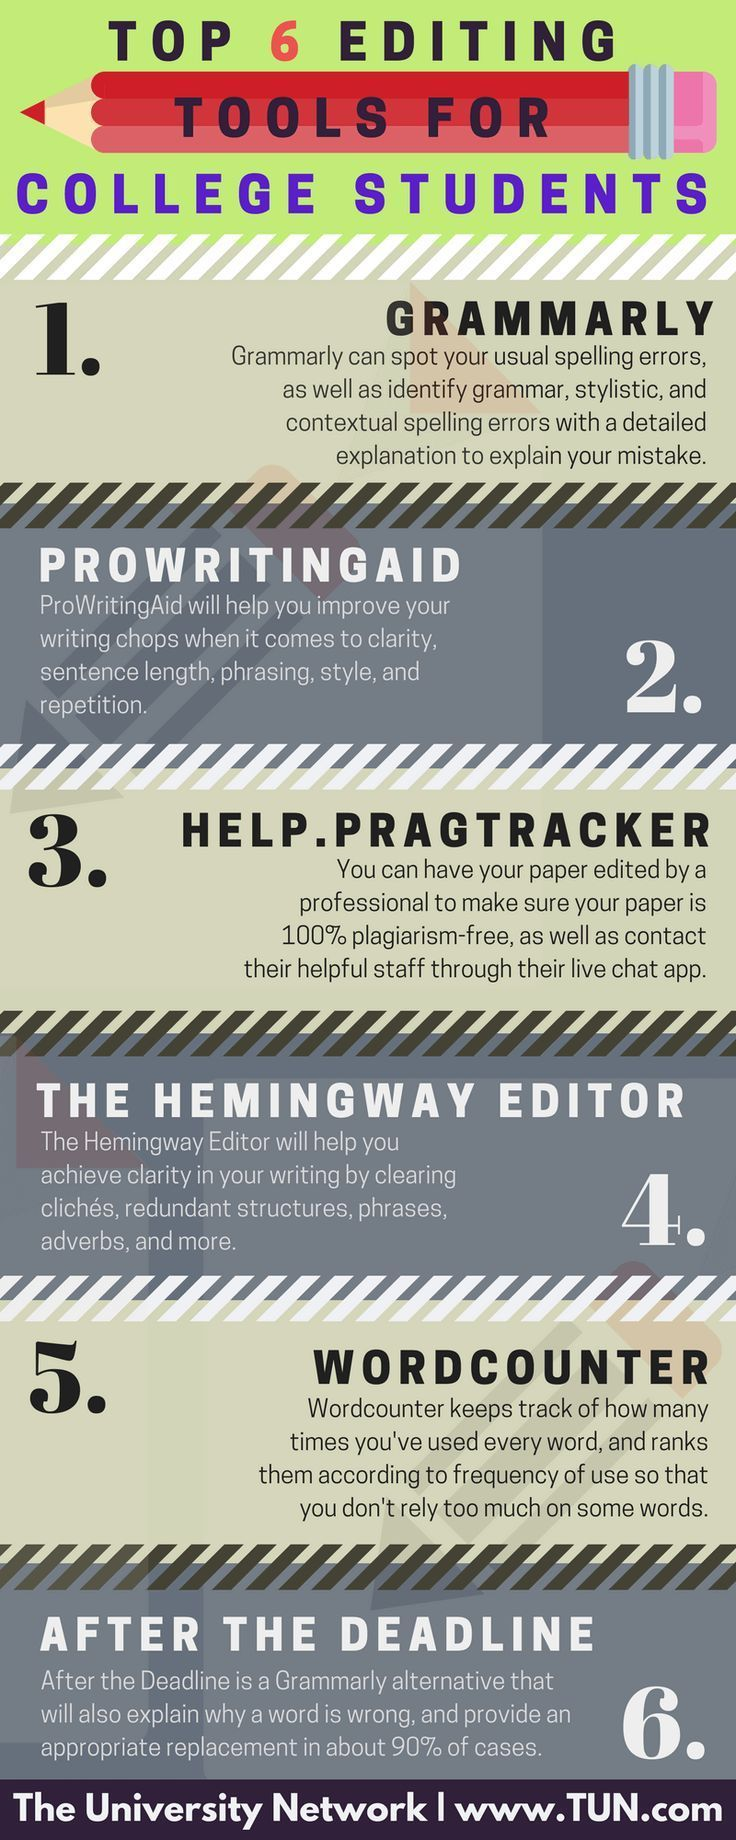 Top 6 Editing Tools for College Students